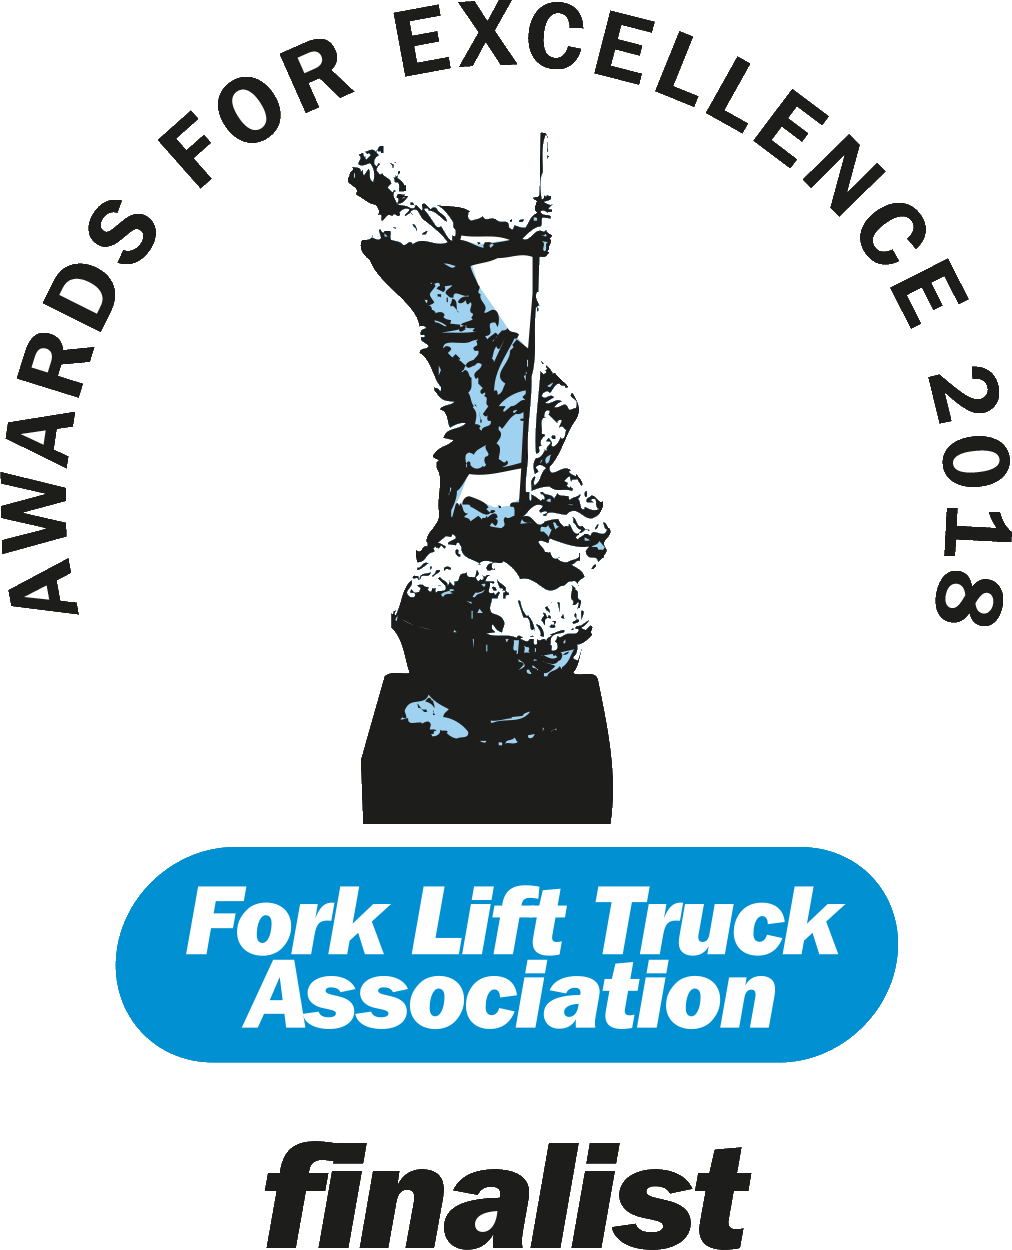 Fork Lift Truck Association Finalists 2018